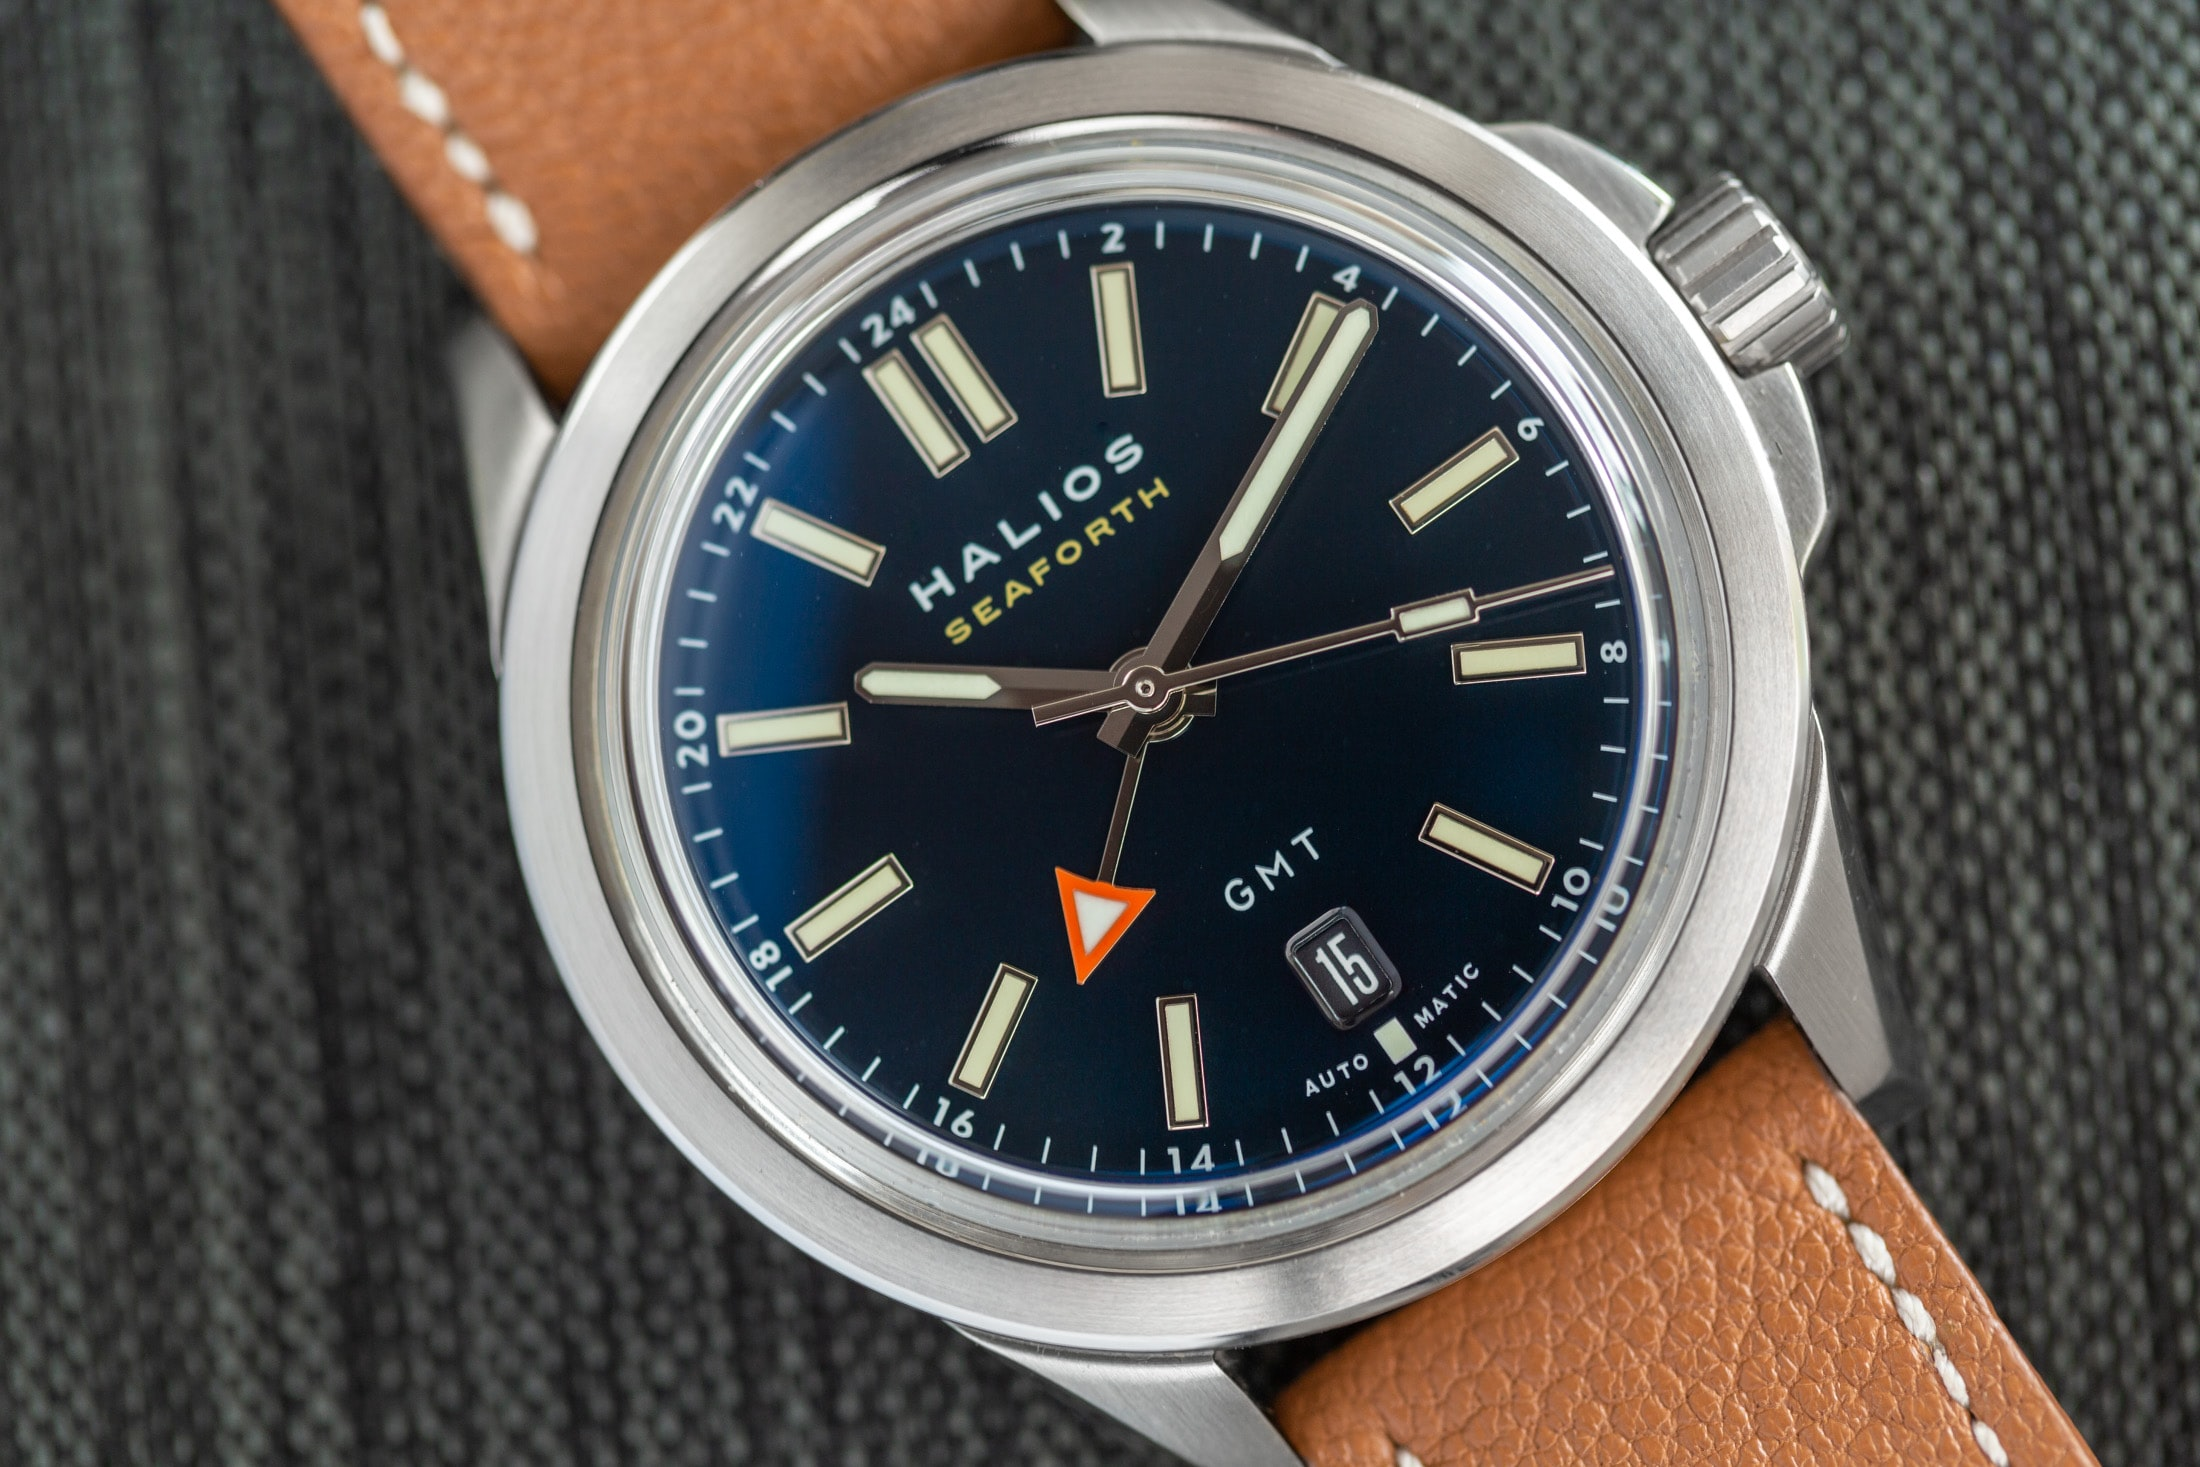 Introducing: The Halios Seaforth GMT (Live Pics & Pricing) Halios Seaforth GMT 5